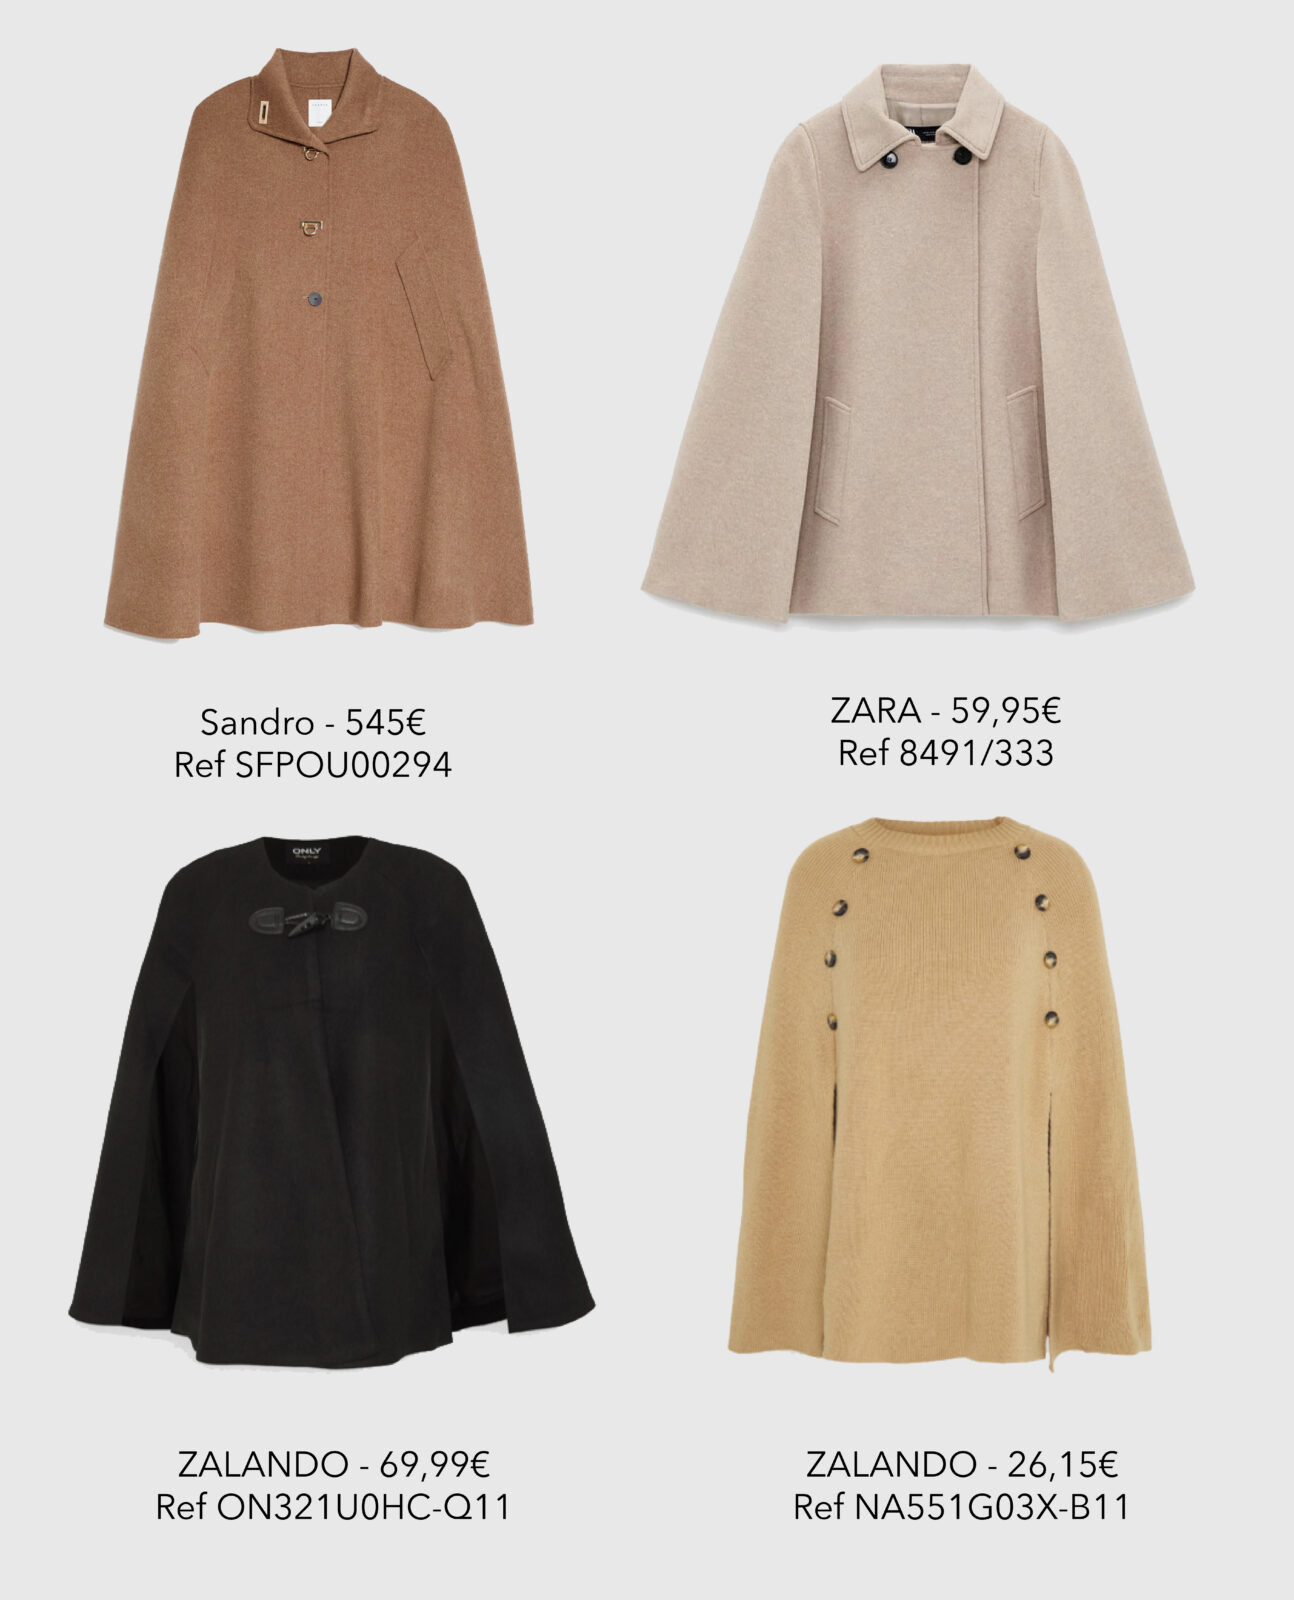 Les capes - Get the Look